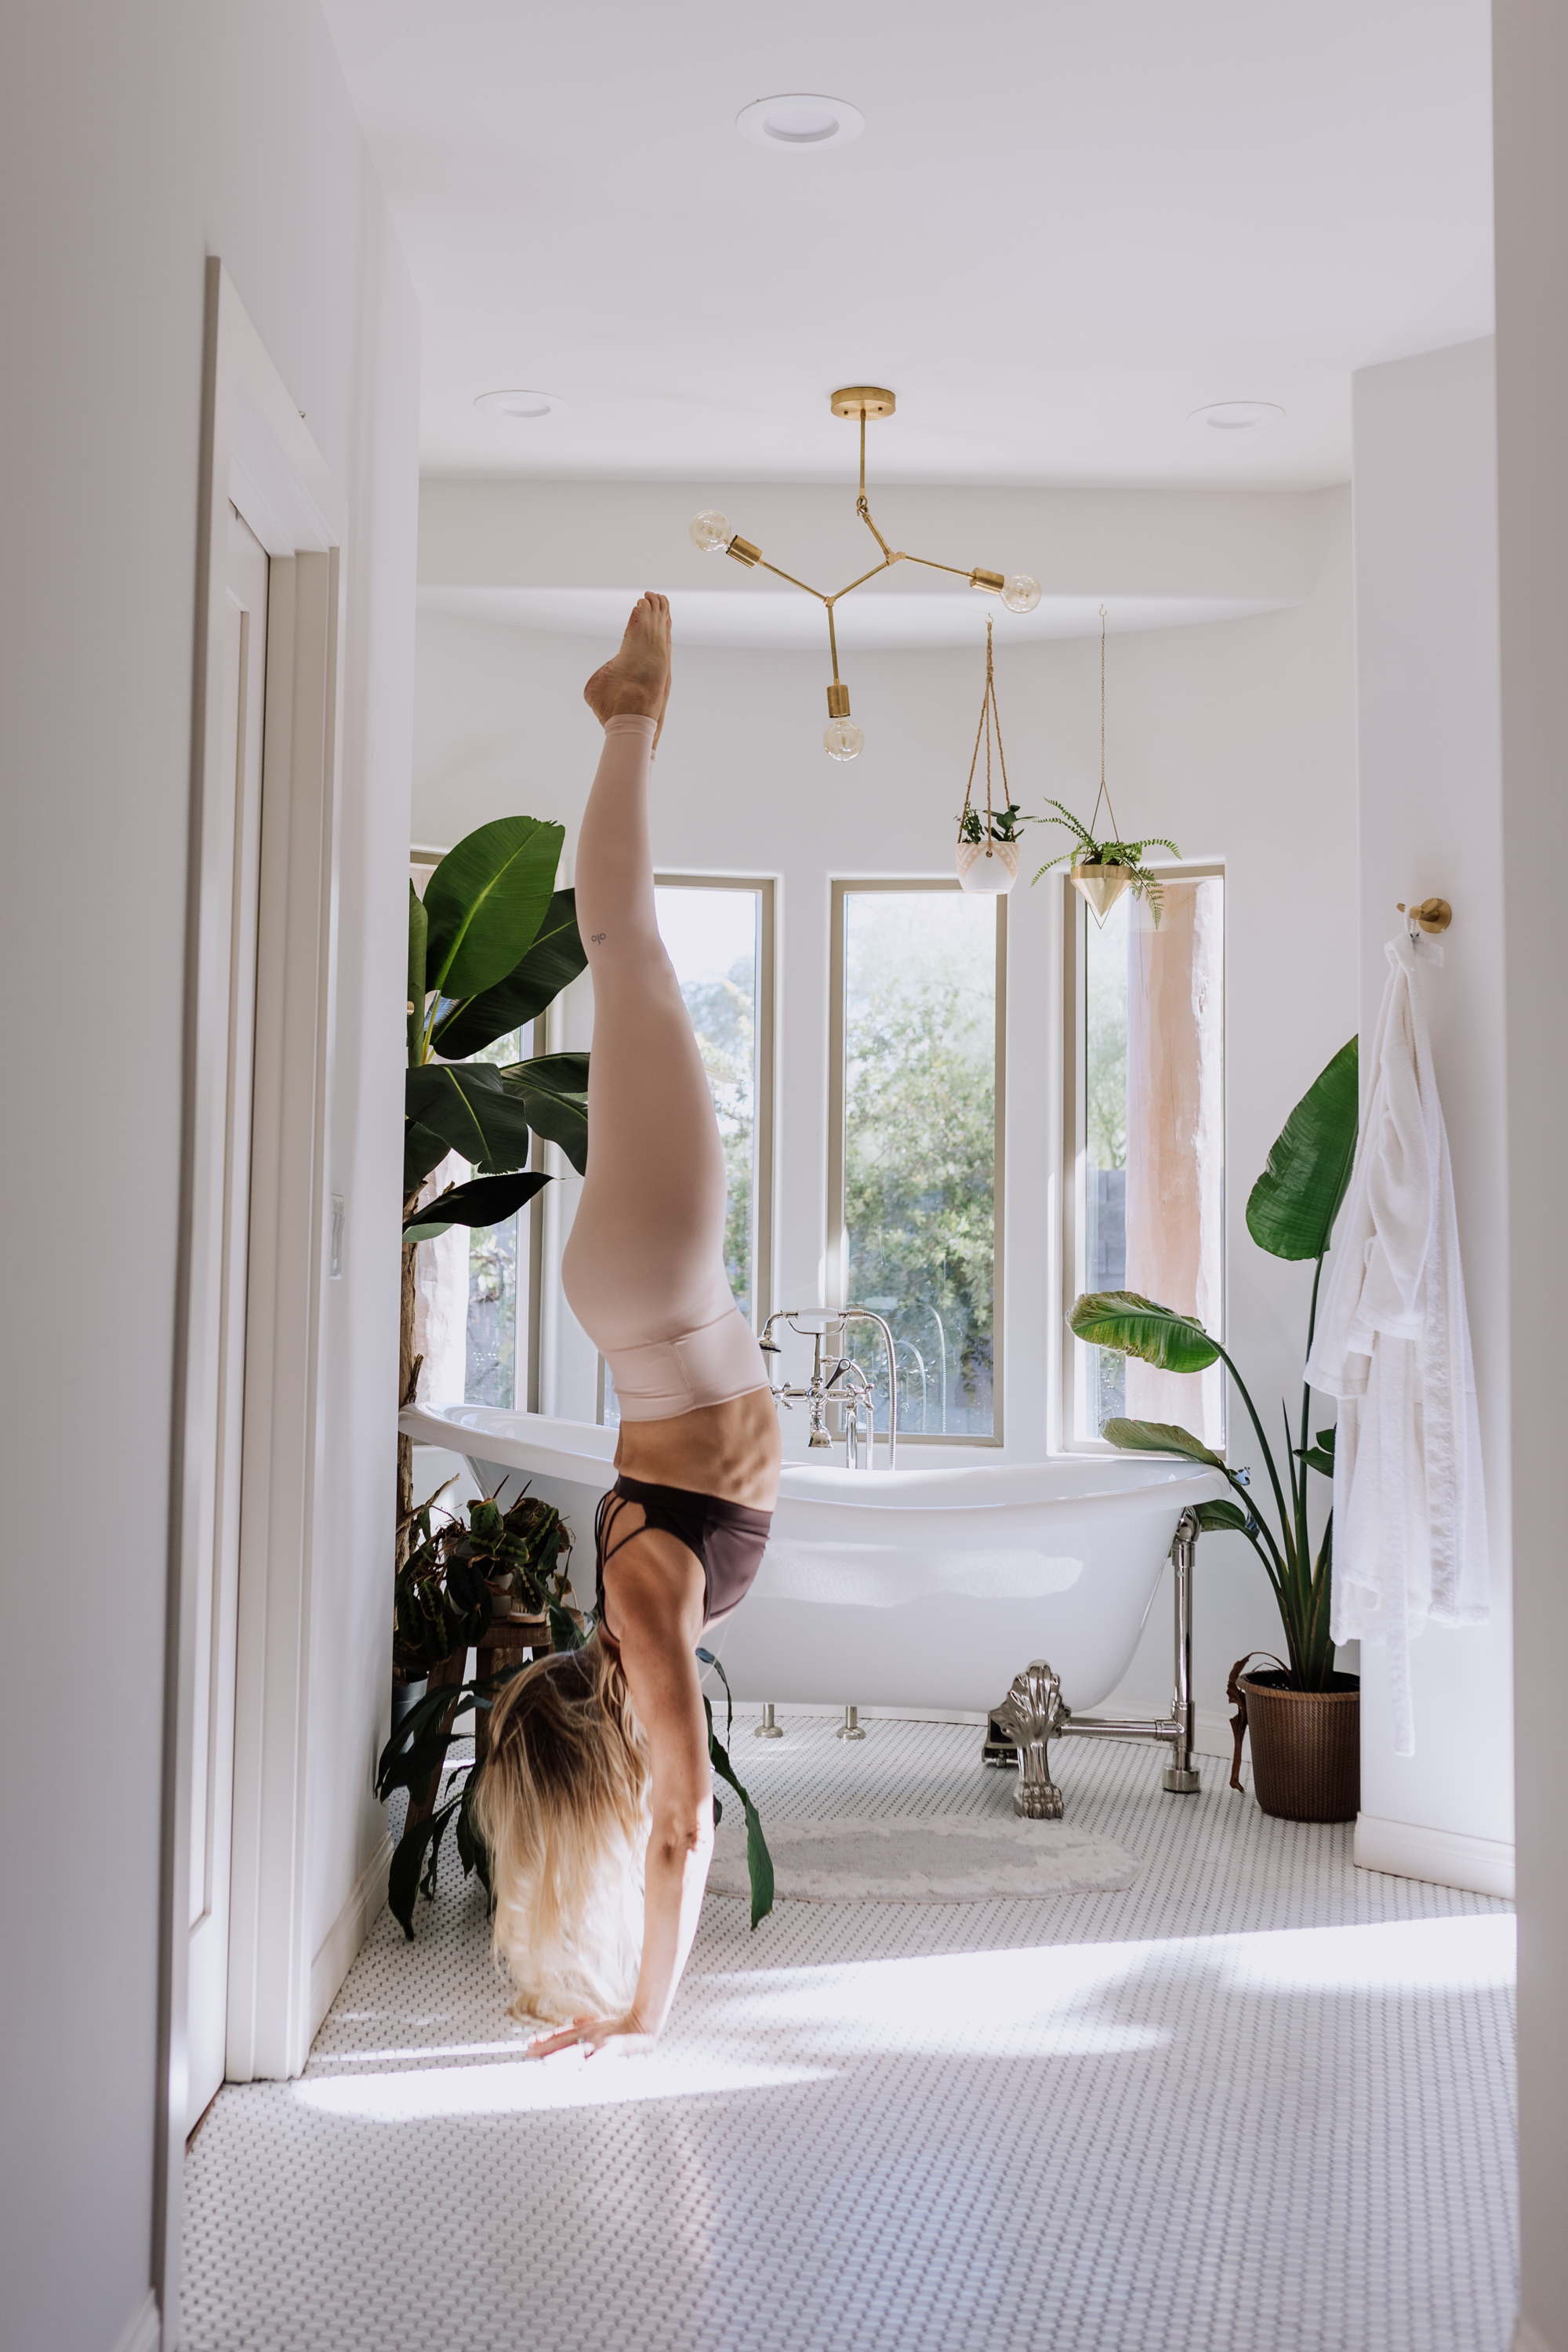 more yoga in the new year | thelovedesignedlife.com #newyeargoals #moreyoga #yogaeverydamnday #yoga #handstand